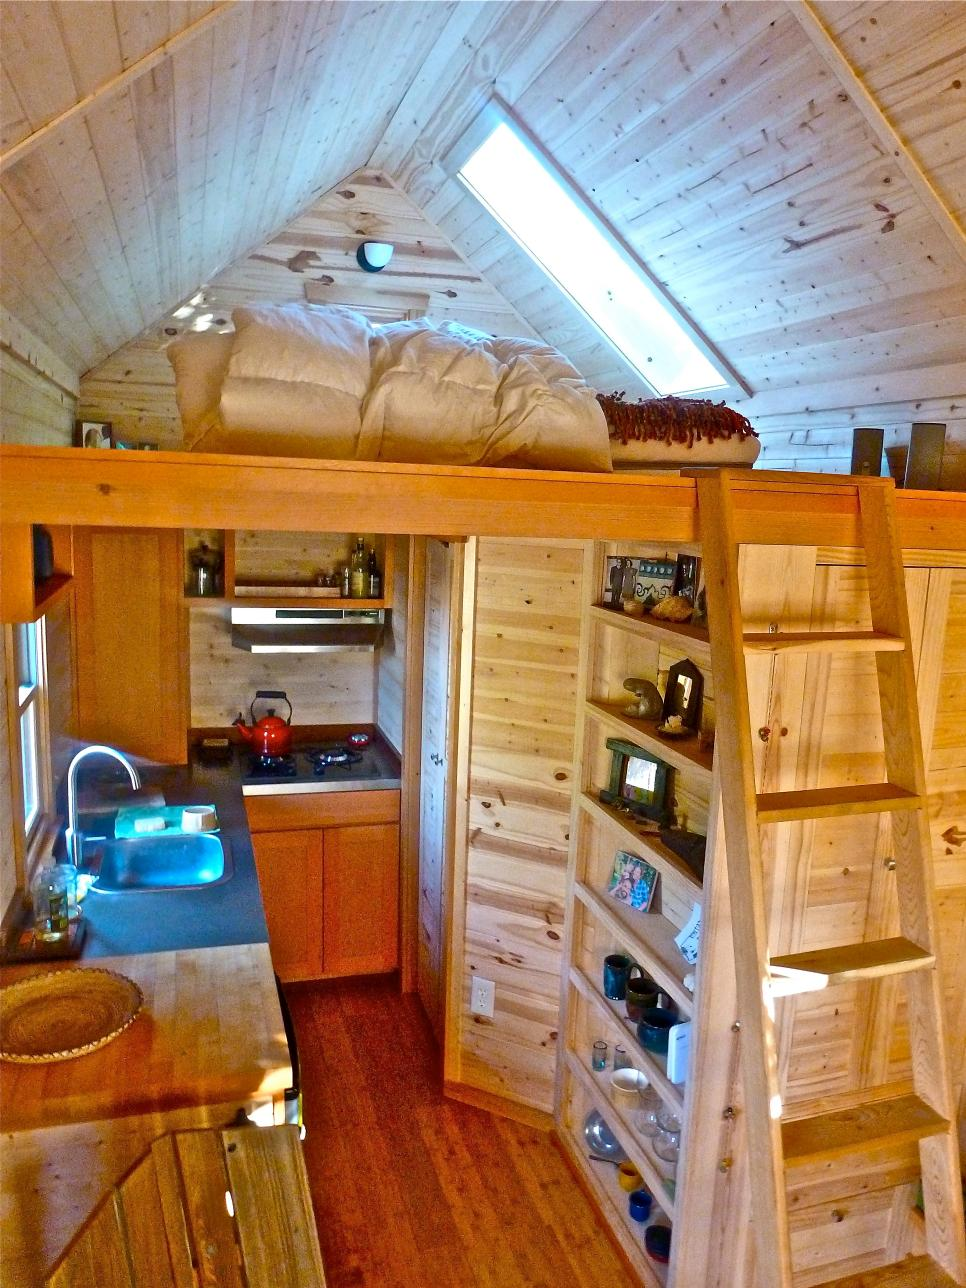 Admirable Pictures Of 10 Extreme Tiny Homes From Hgtv Remodels Hgtv Largest Home Design Picture Inspirations Pitcheantrous